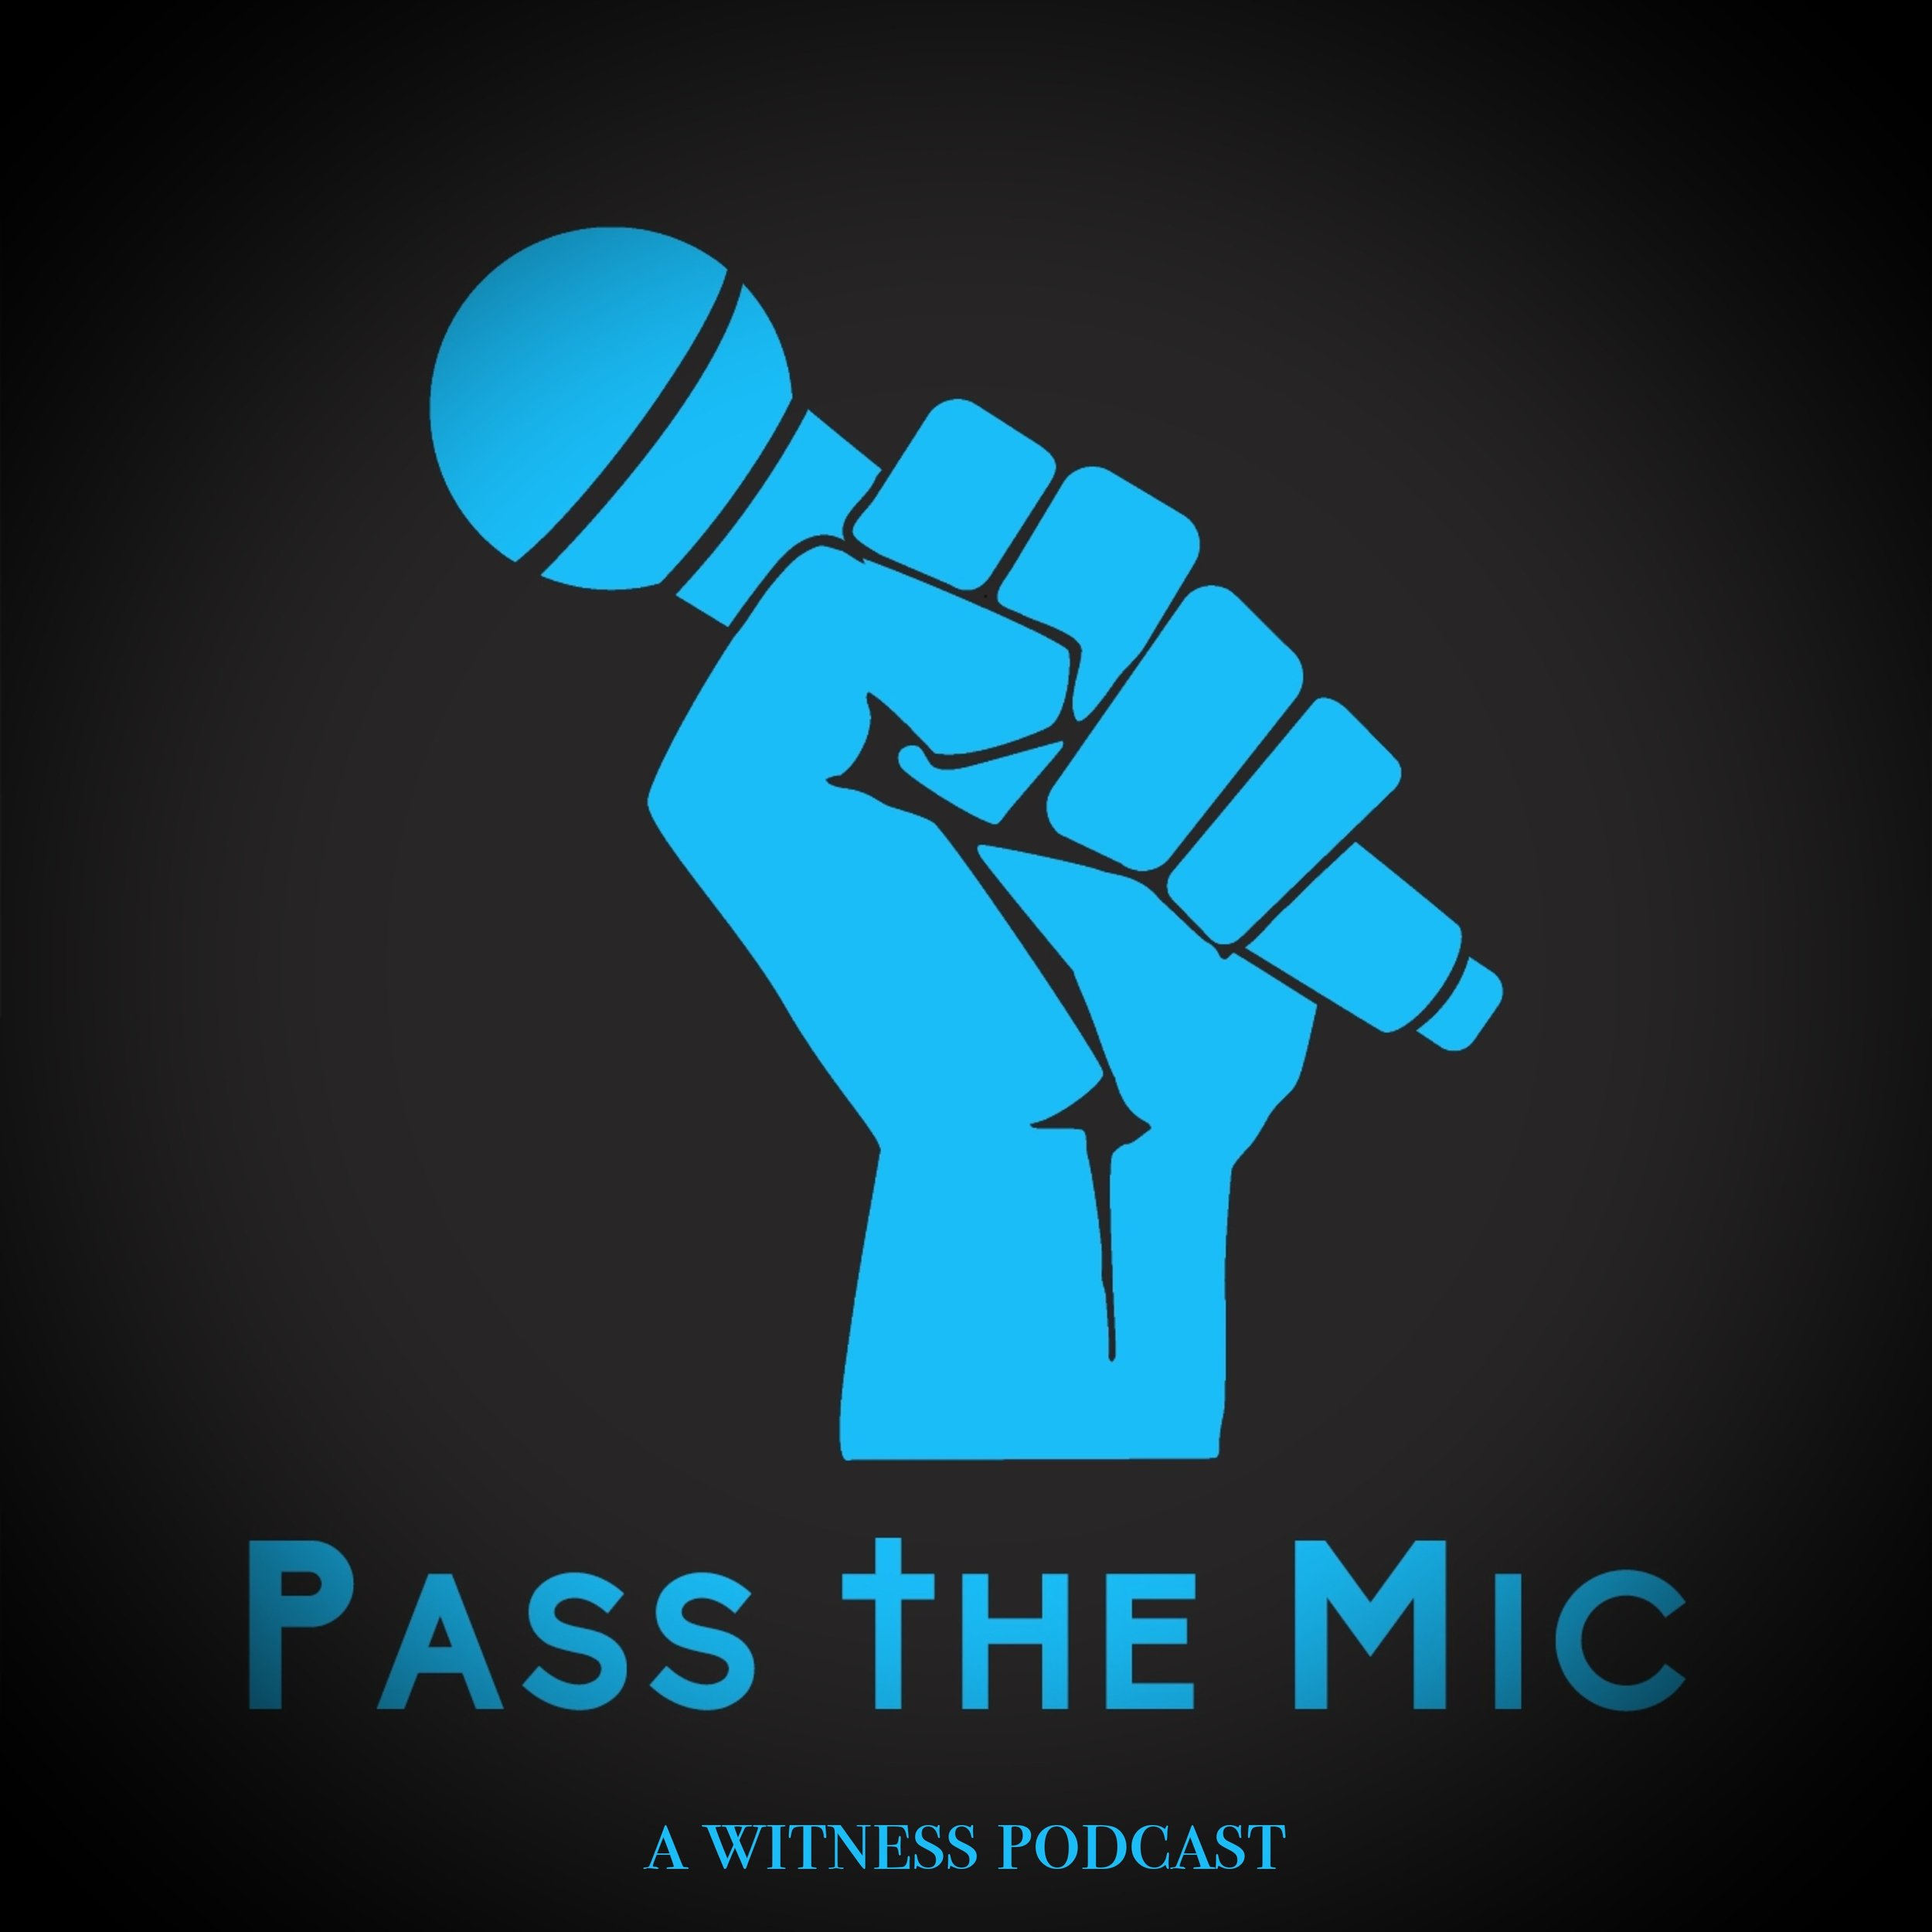 Pass the Mic from The Witness, a Black Christian Collective